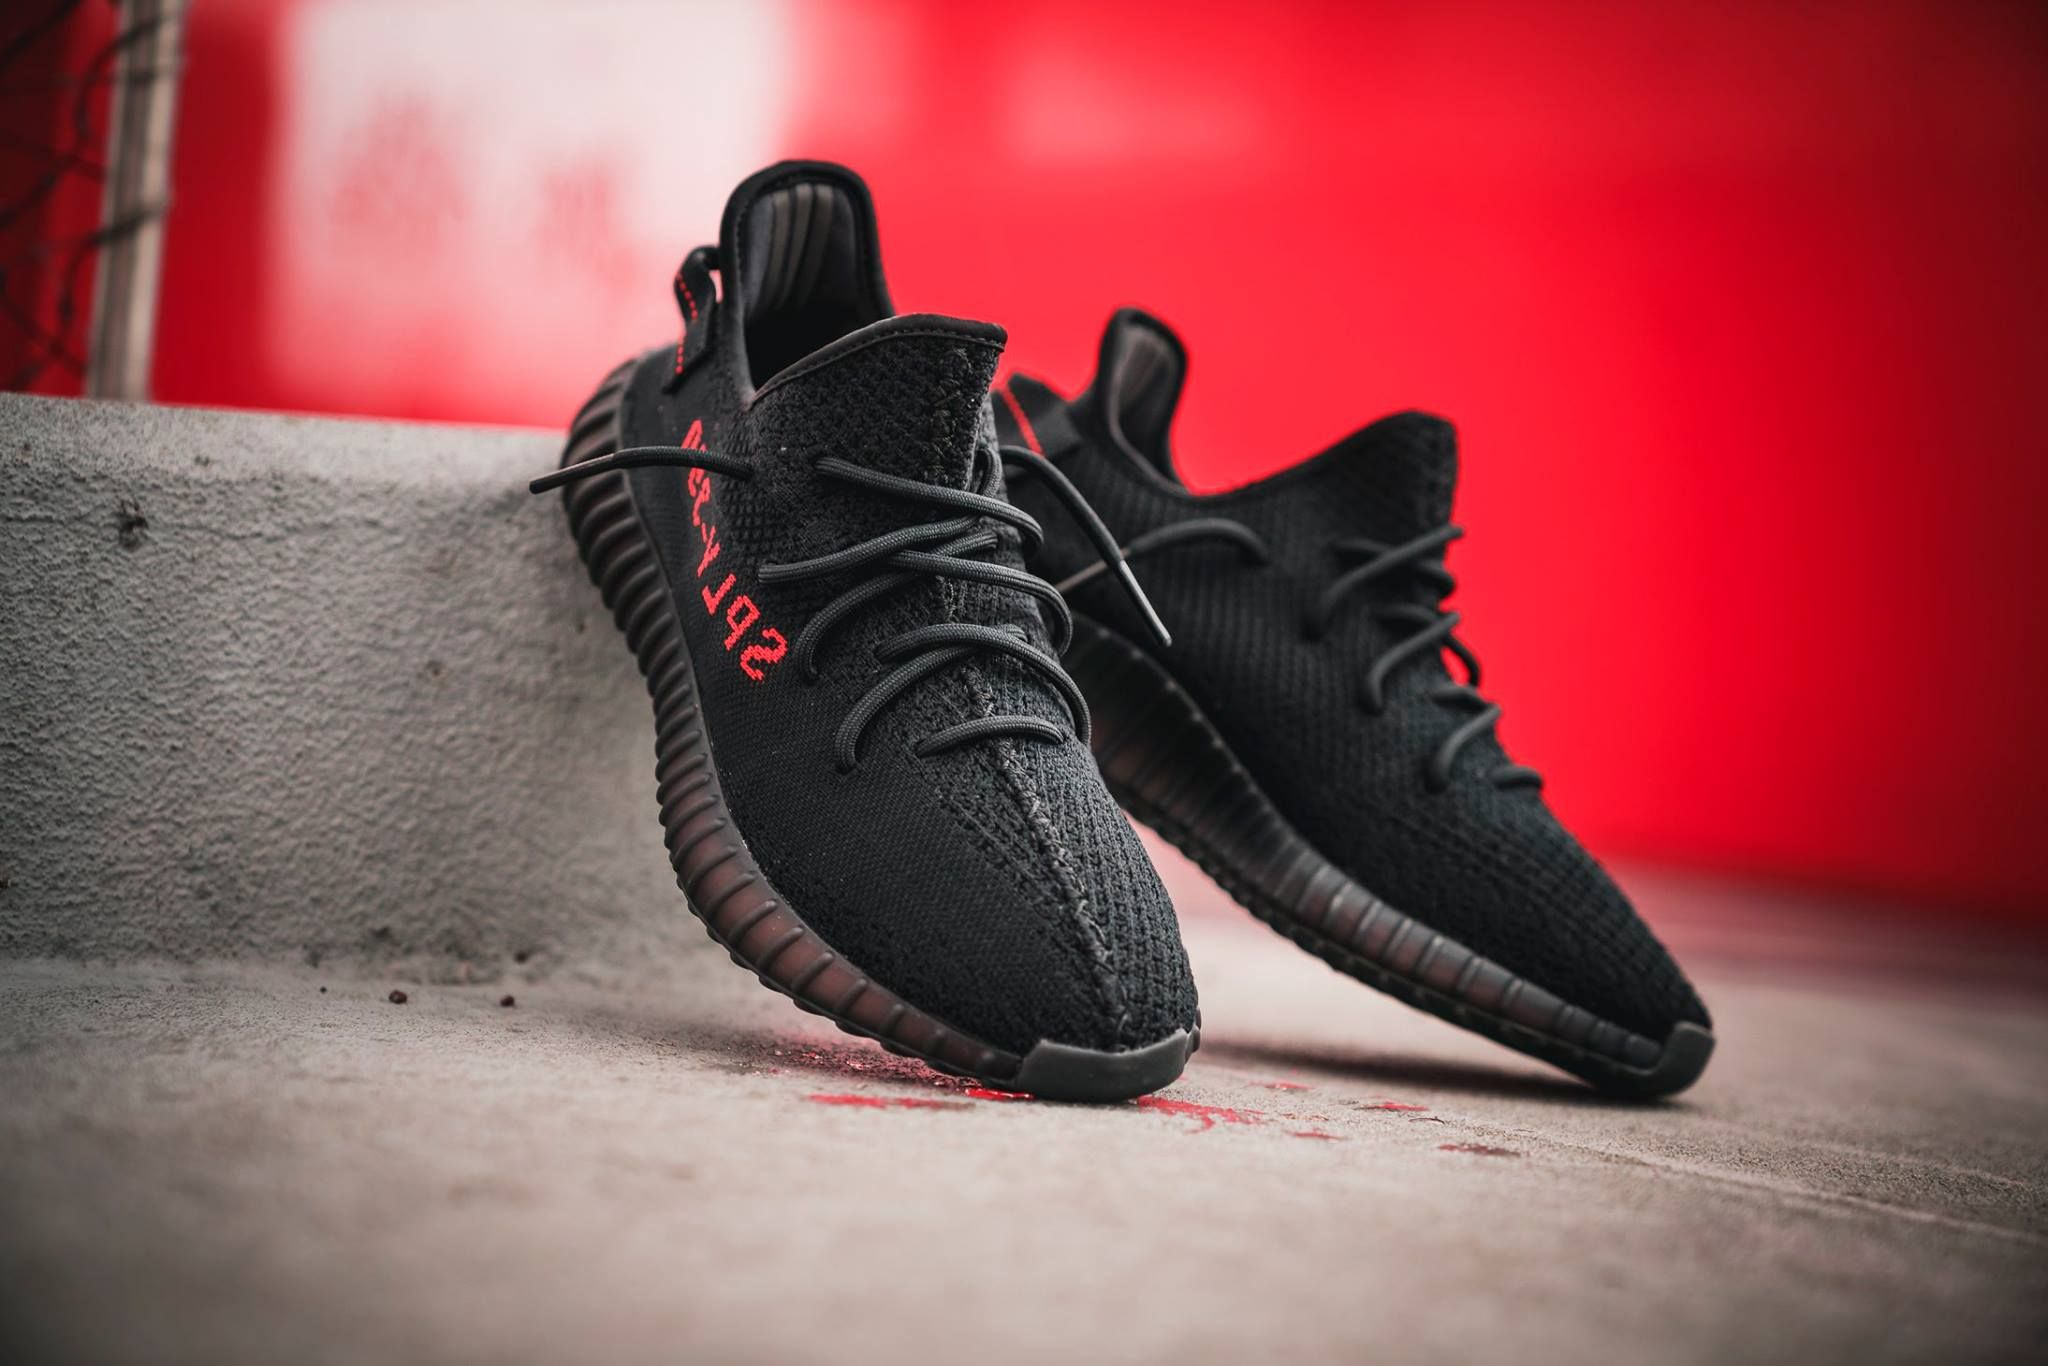 super quality outlet on sale online store ᐅ adidas Yeezy Boost 350 V2 – Core Black / Red : Closer ...